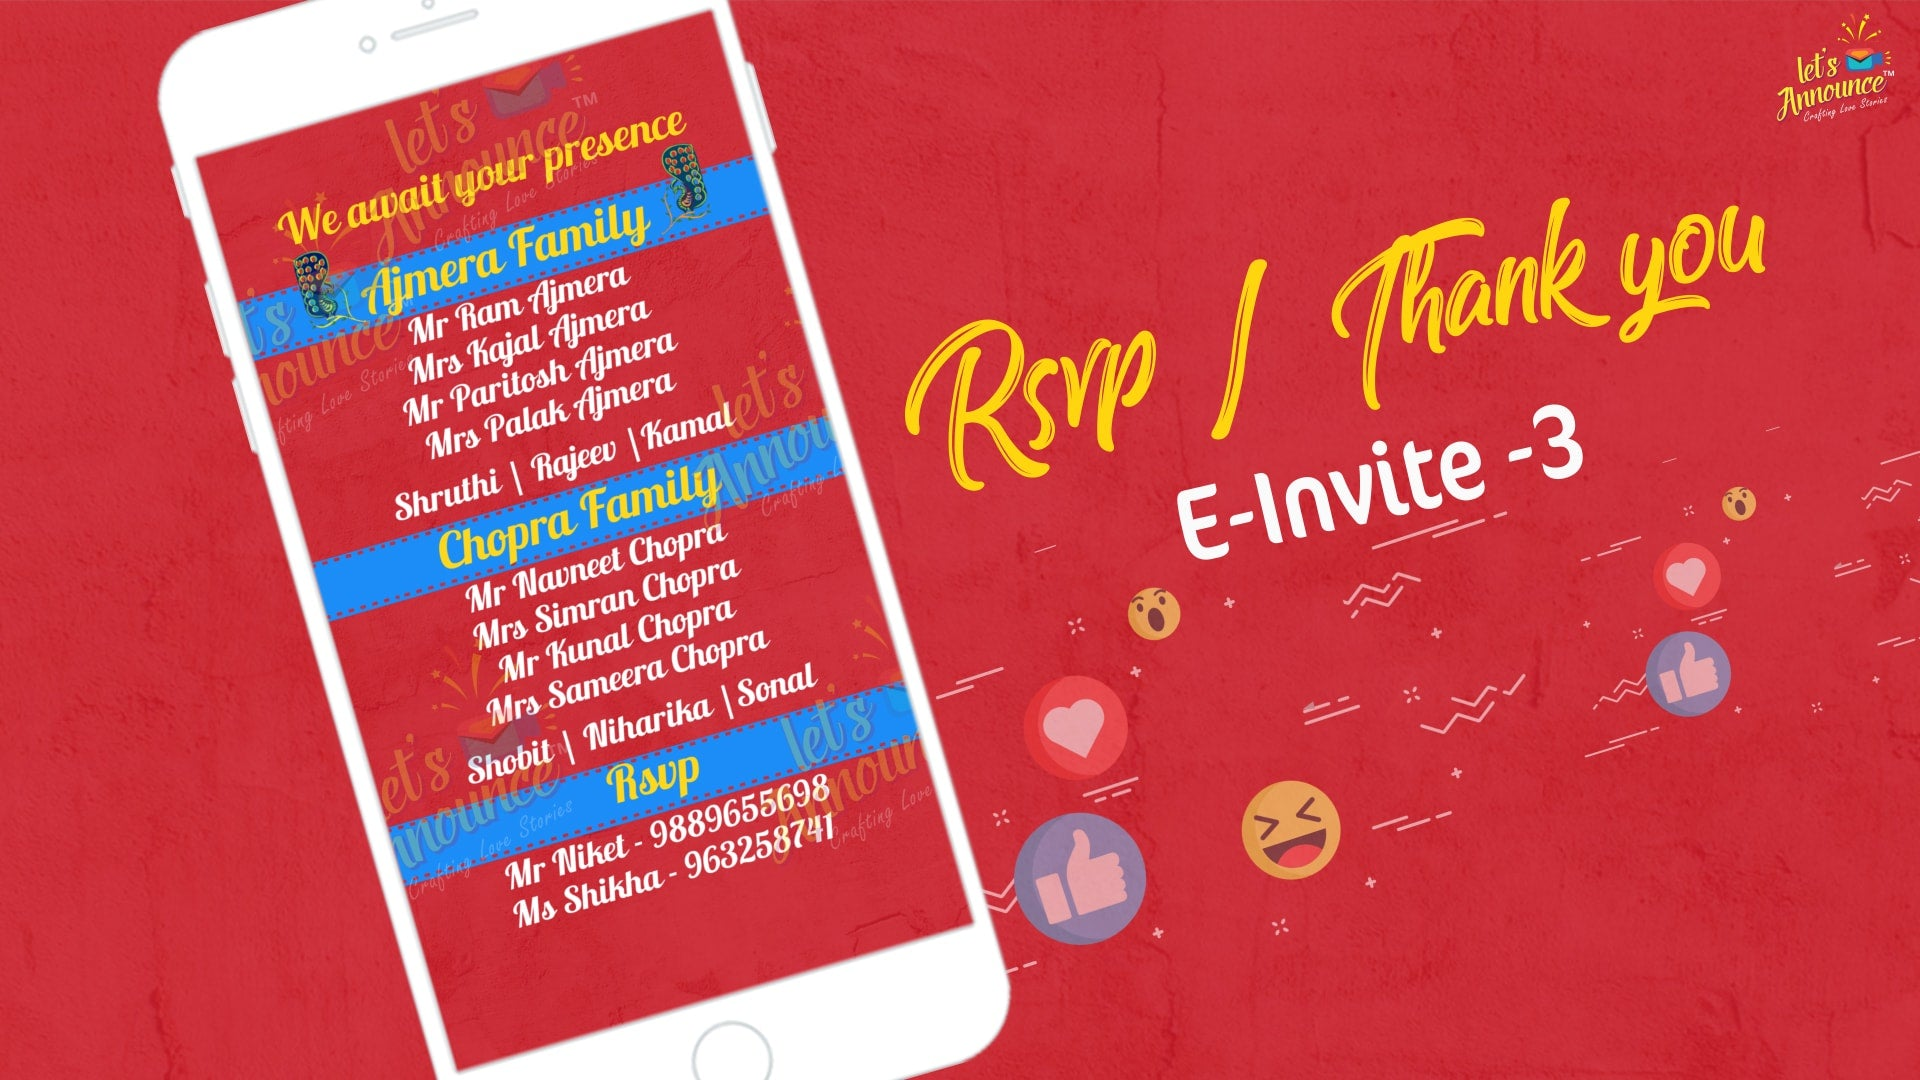 Filmy Wedding E Invite Usd 50 Letsannounce